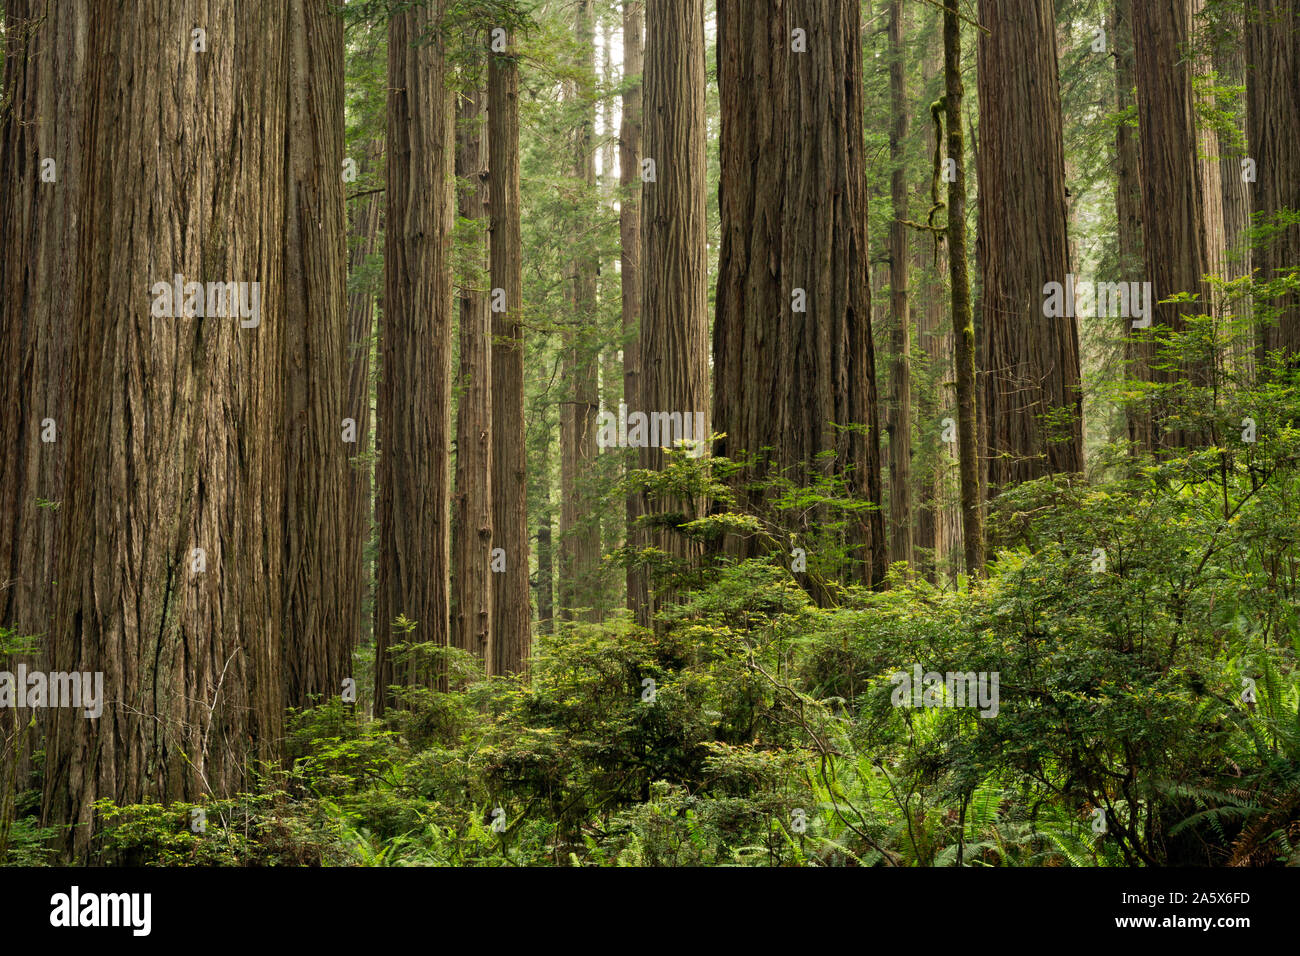 CA03764-00...CALIFORNIA - Redwood forest in Jedediah Smith Redwoods State Park; part of Redwoods National and State Parks complex. Stock Photo